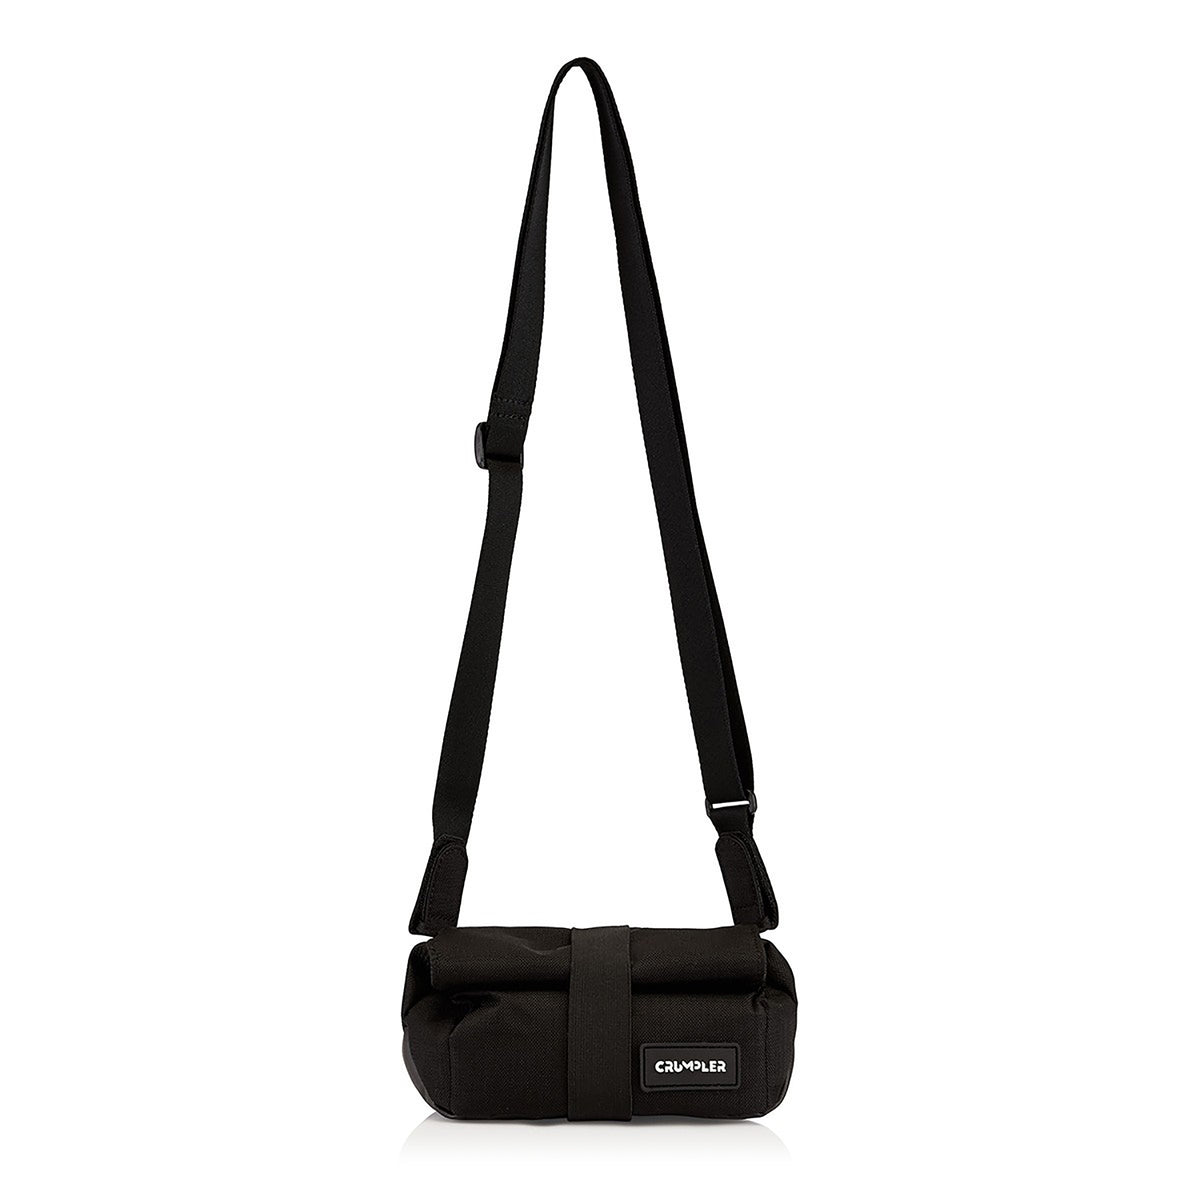 Crumpler: Snap Camera Bag - Black